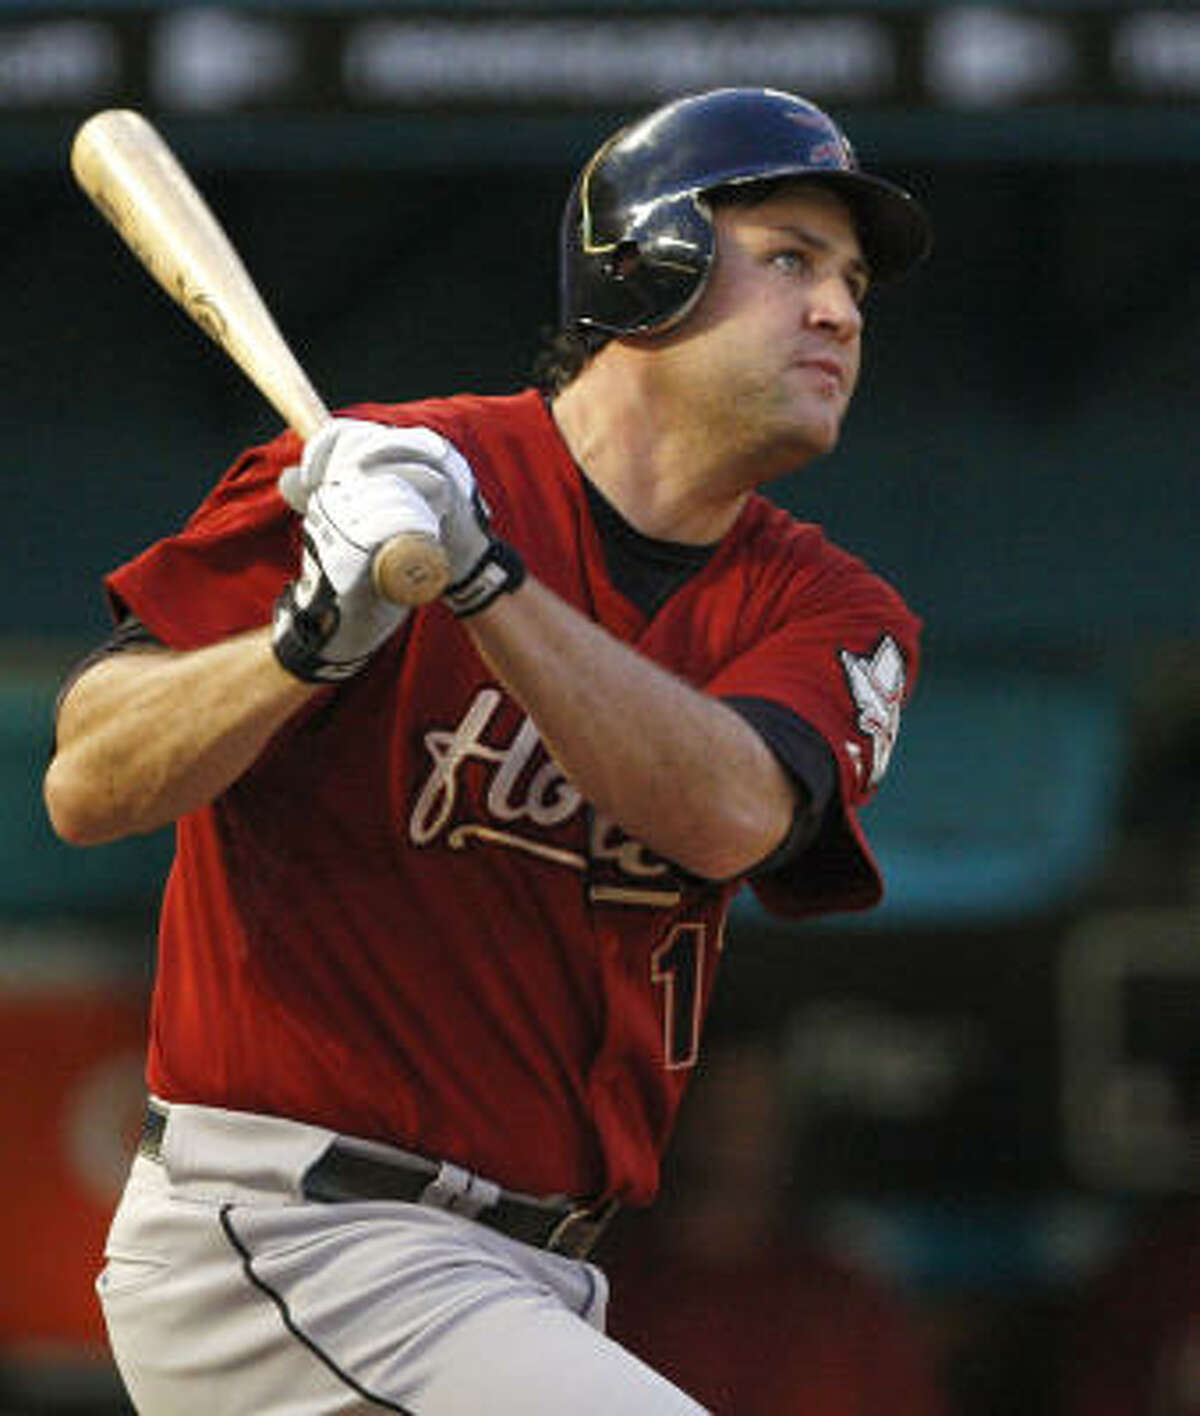 Lance Berkman Berkman played collegiate ball for Rice where he won National College Player of the Year honors in 1997. Berkman is currently in his ninth season with the Astros where he has hit over 300 home runs with a .300 career batting average.